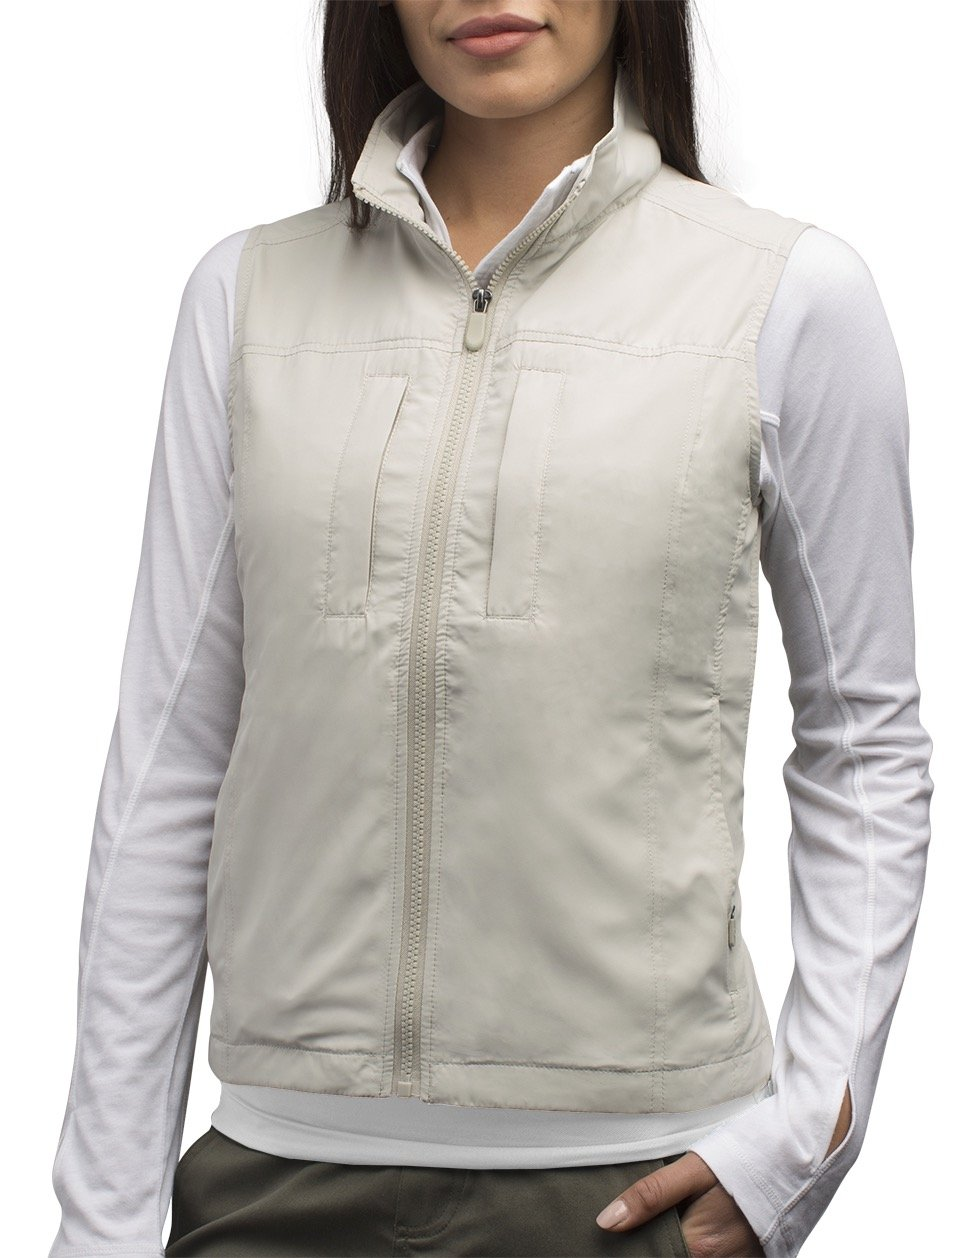 SCOTTeVEST Women's Featherweight Vest - 14 Pockets - Travel Clothing CMT M